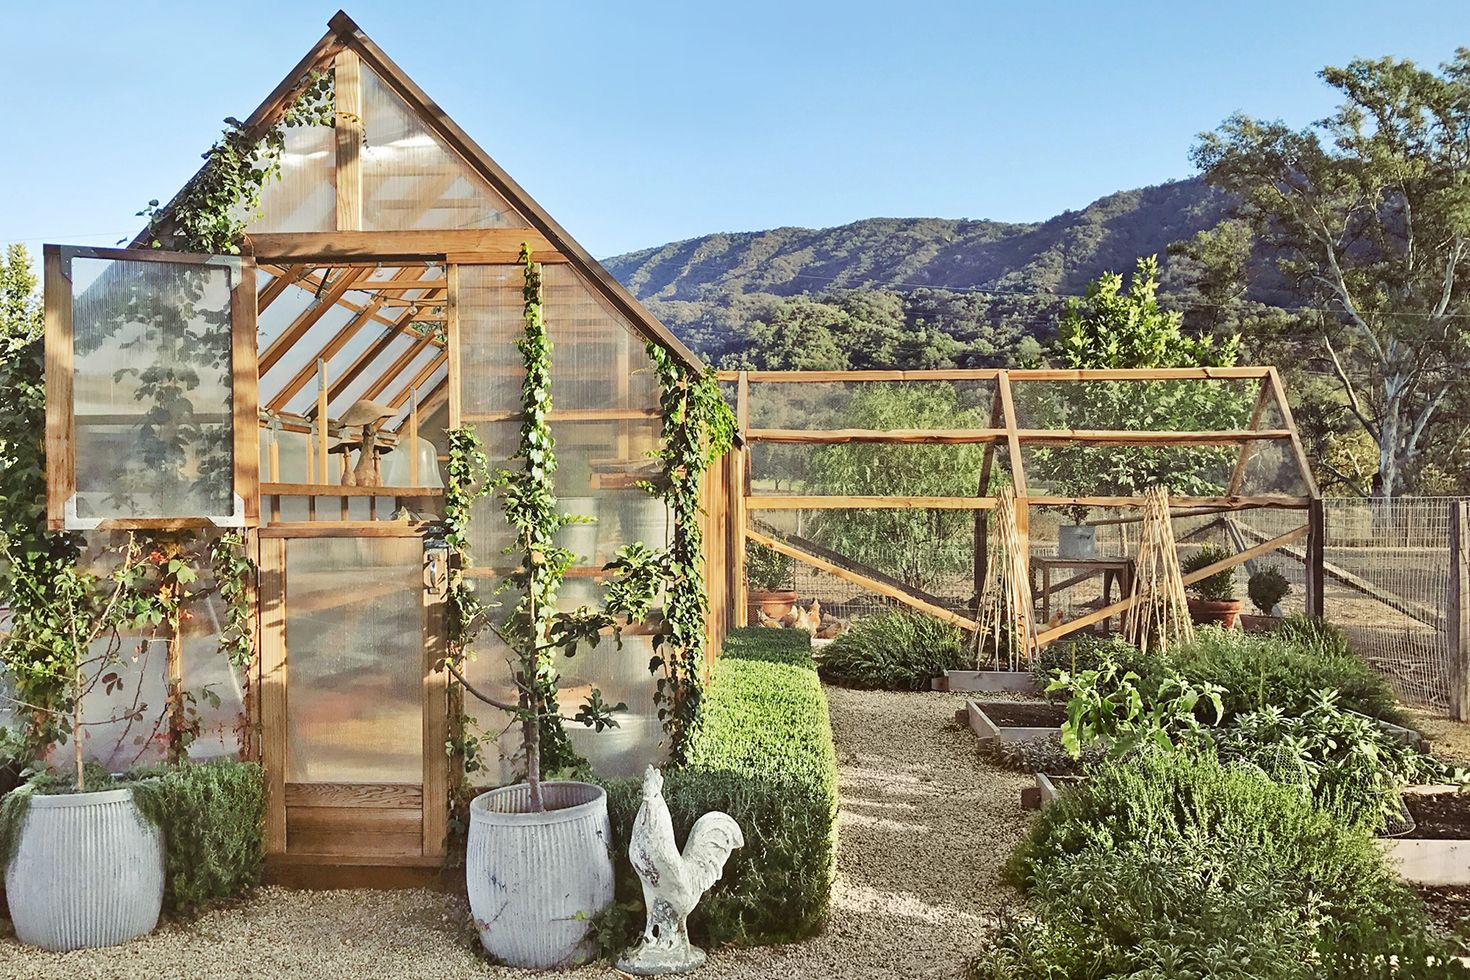 14 Cheap Landscaping Ideas · How To Build A Chicken Coop